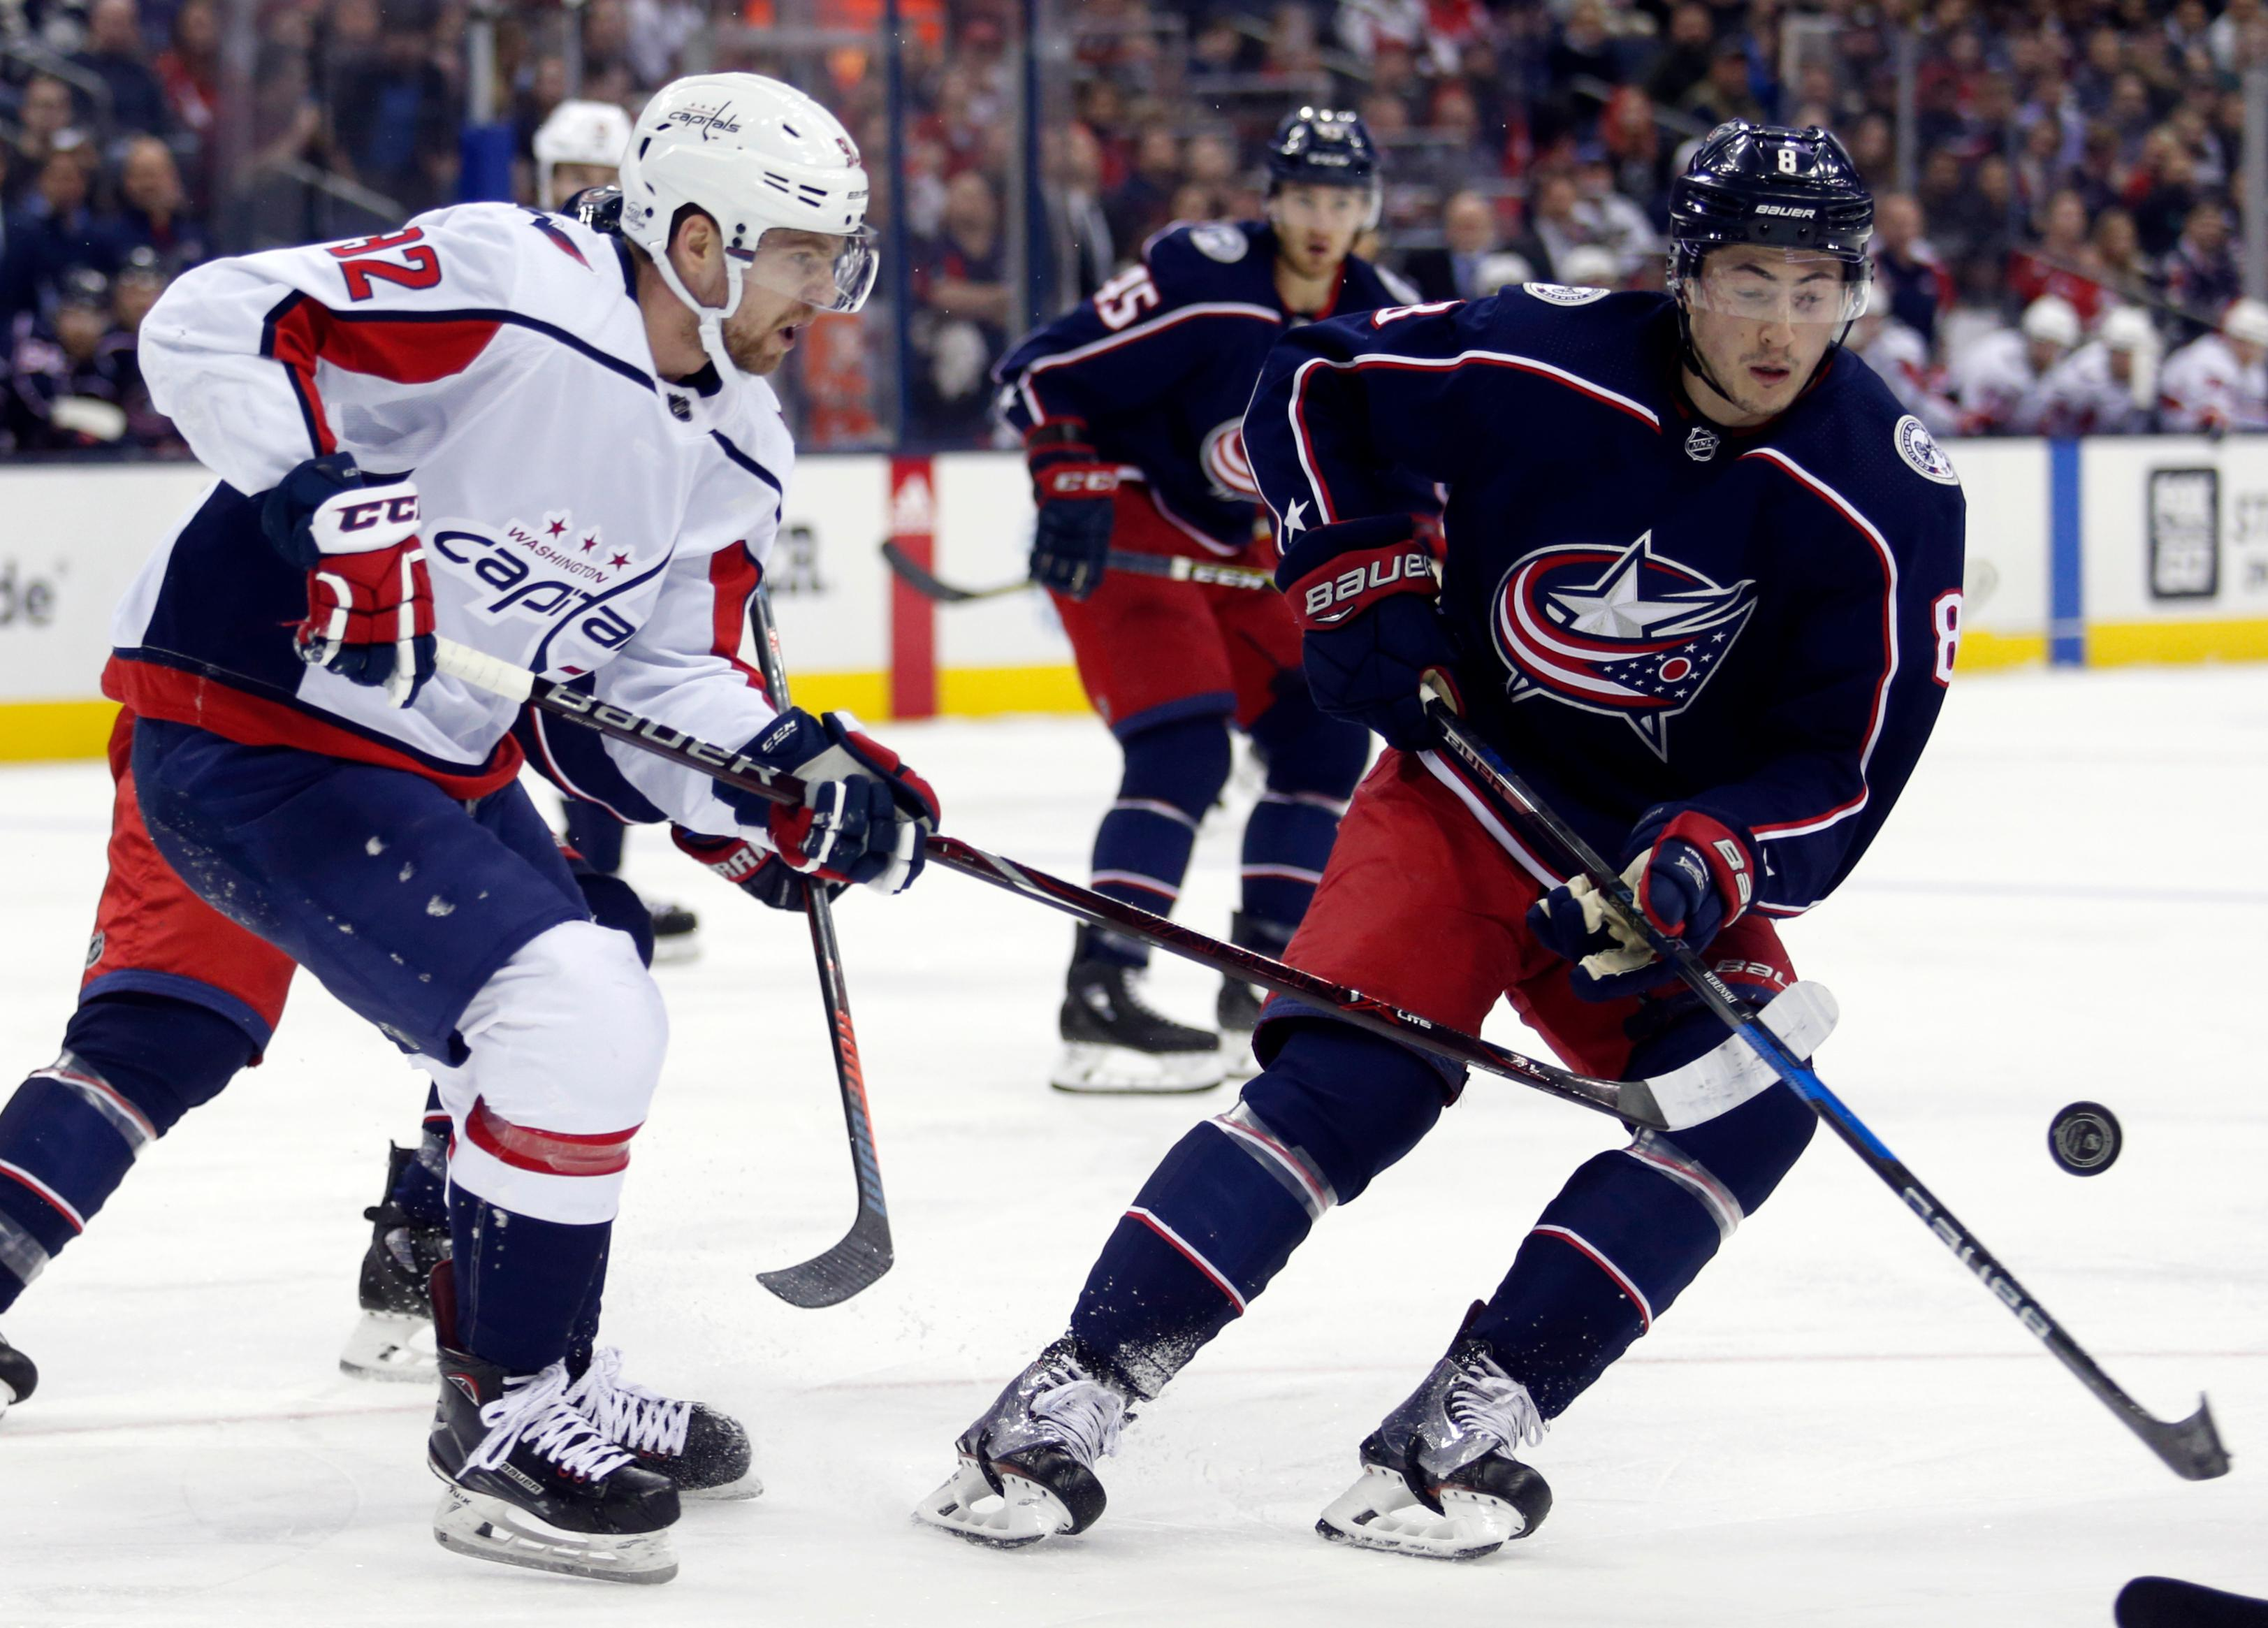 Washington Capitals forward Evgeny Kuznetsov, left, of Russia, passes the puck against Columbus Blue Jackets defenseman Zach Werenski during the first period of an NHL hockey game in Columbus, Ohio, Monday, Feb. 26, 2018. (AP Photo/Paul Vernon)